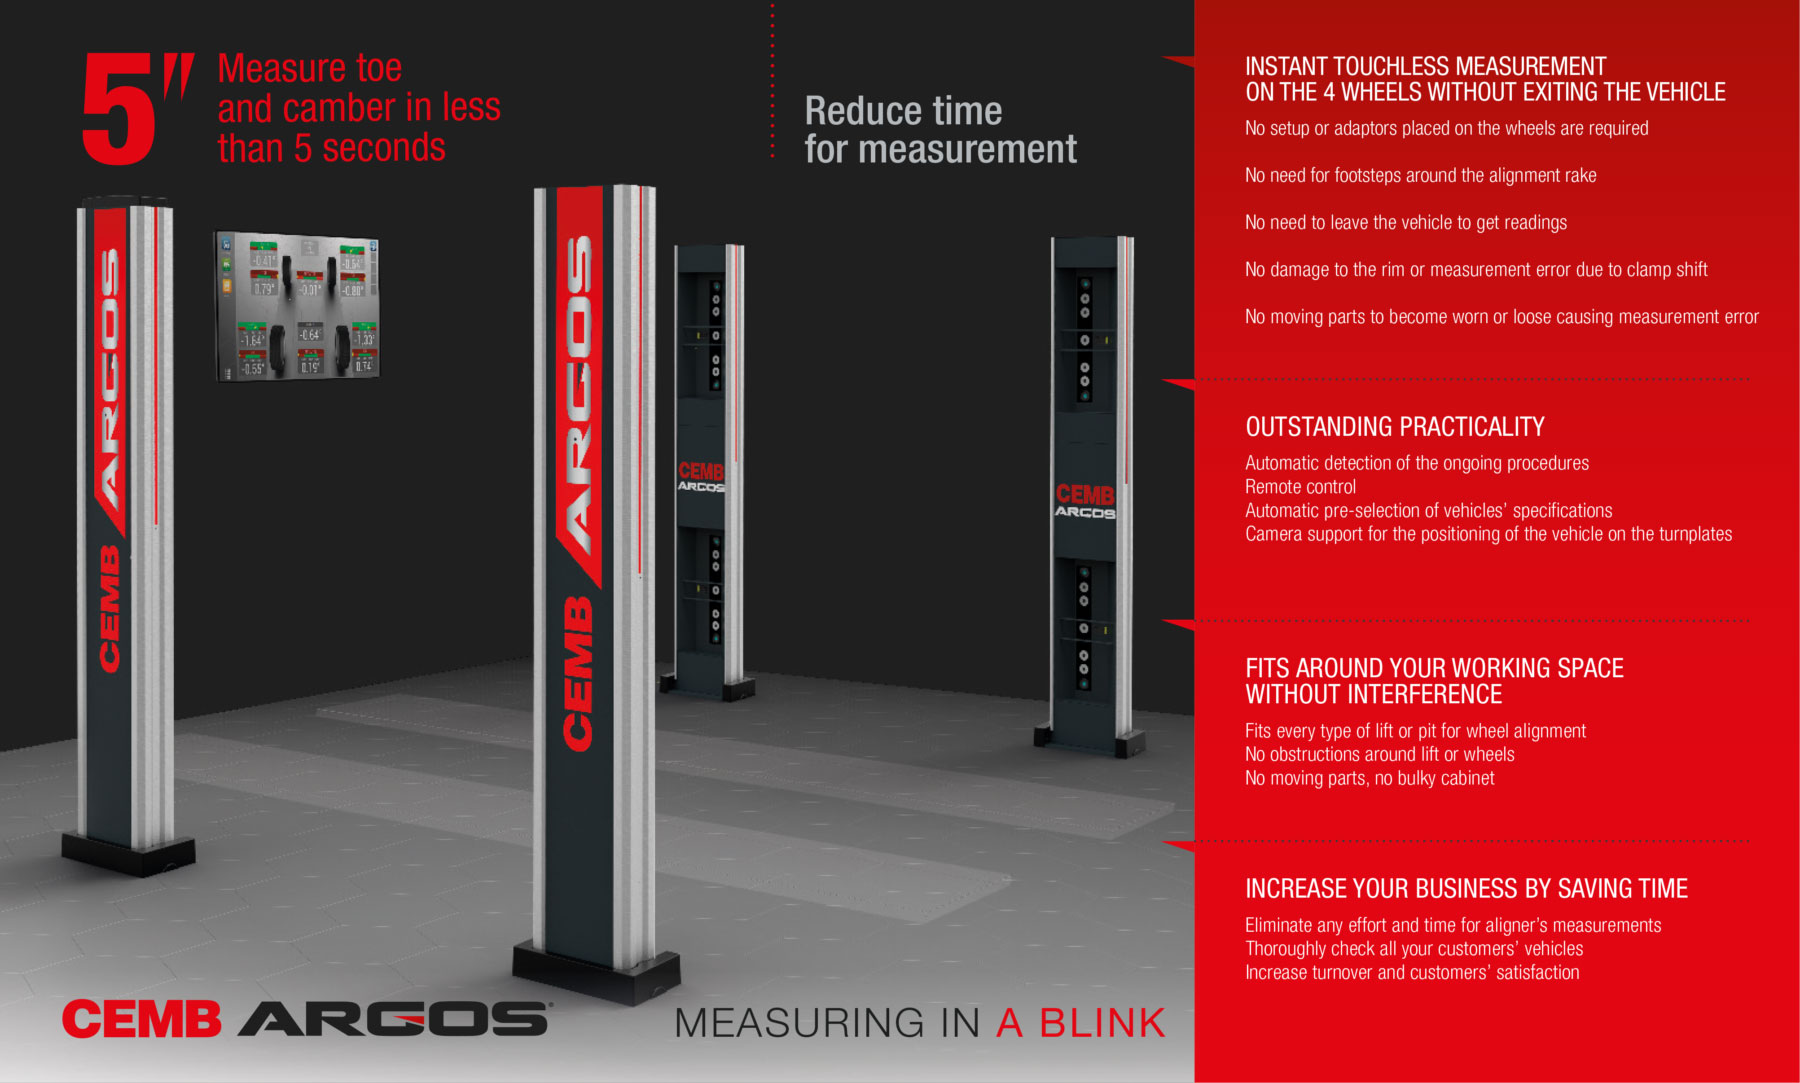 ARGOS Wheel Alignment System